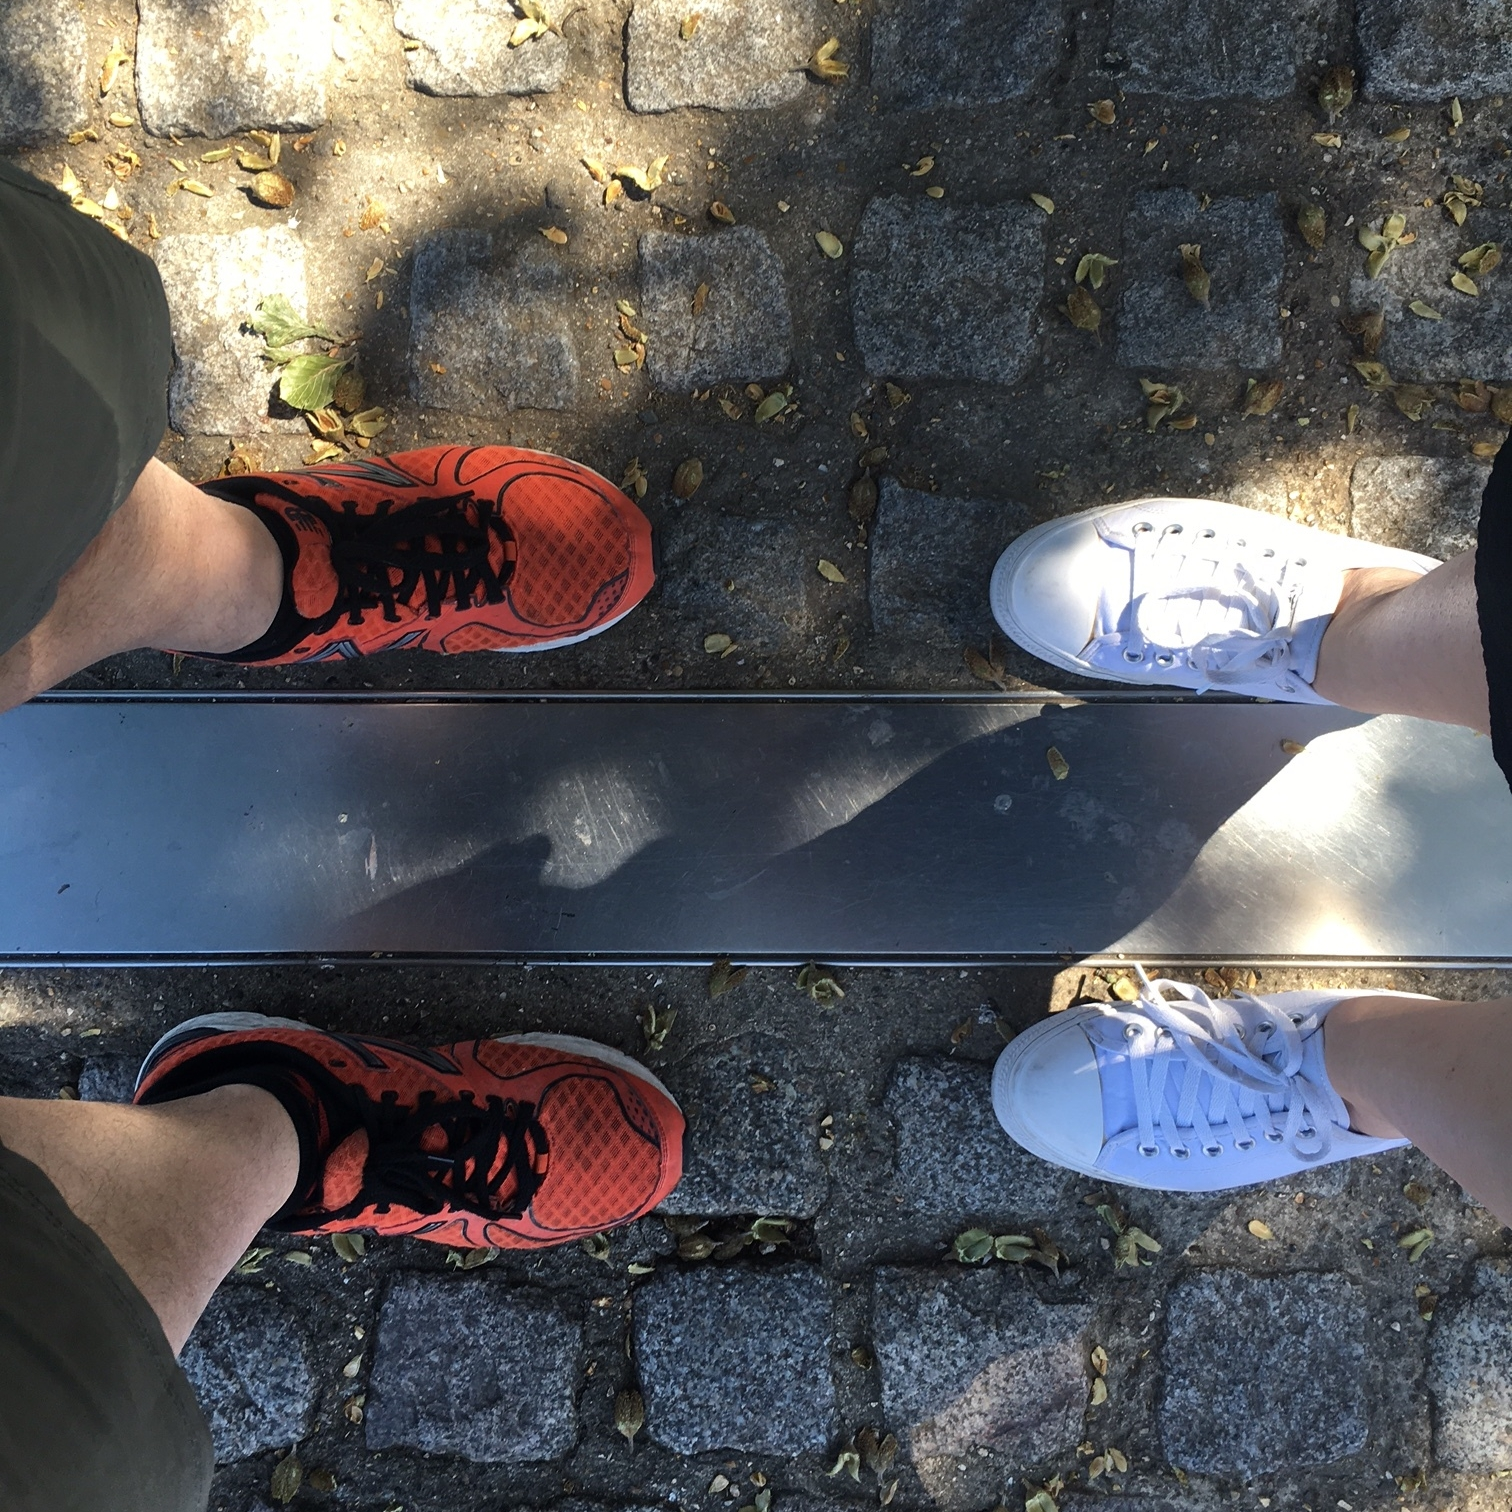 Prime Meridian, Greenwich by The Doubtful Traveller